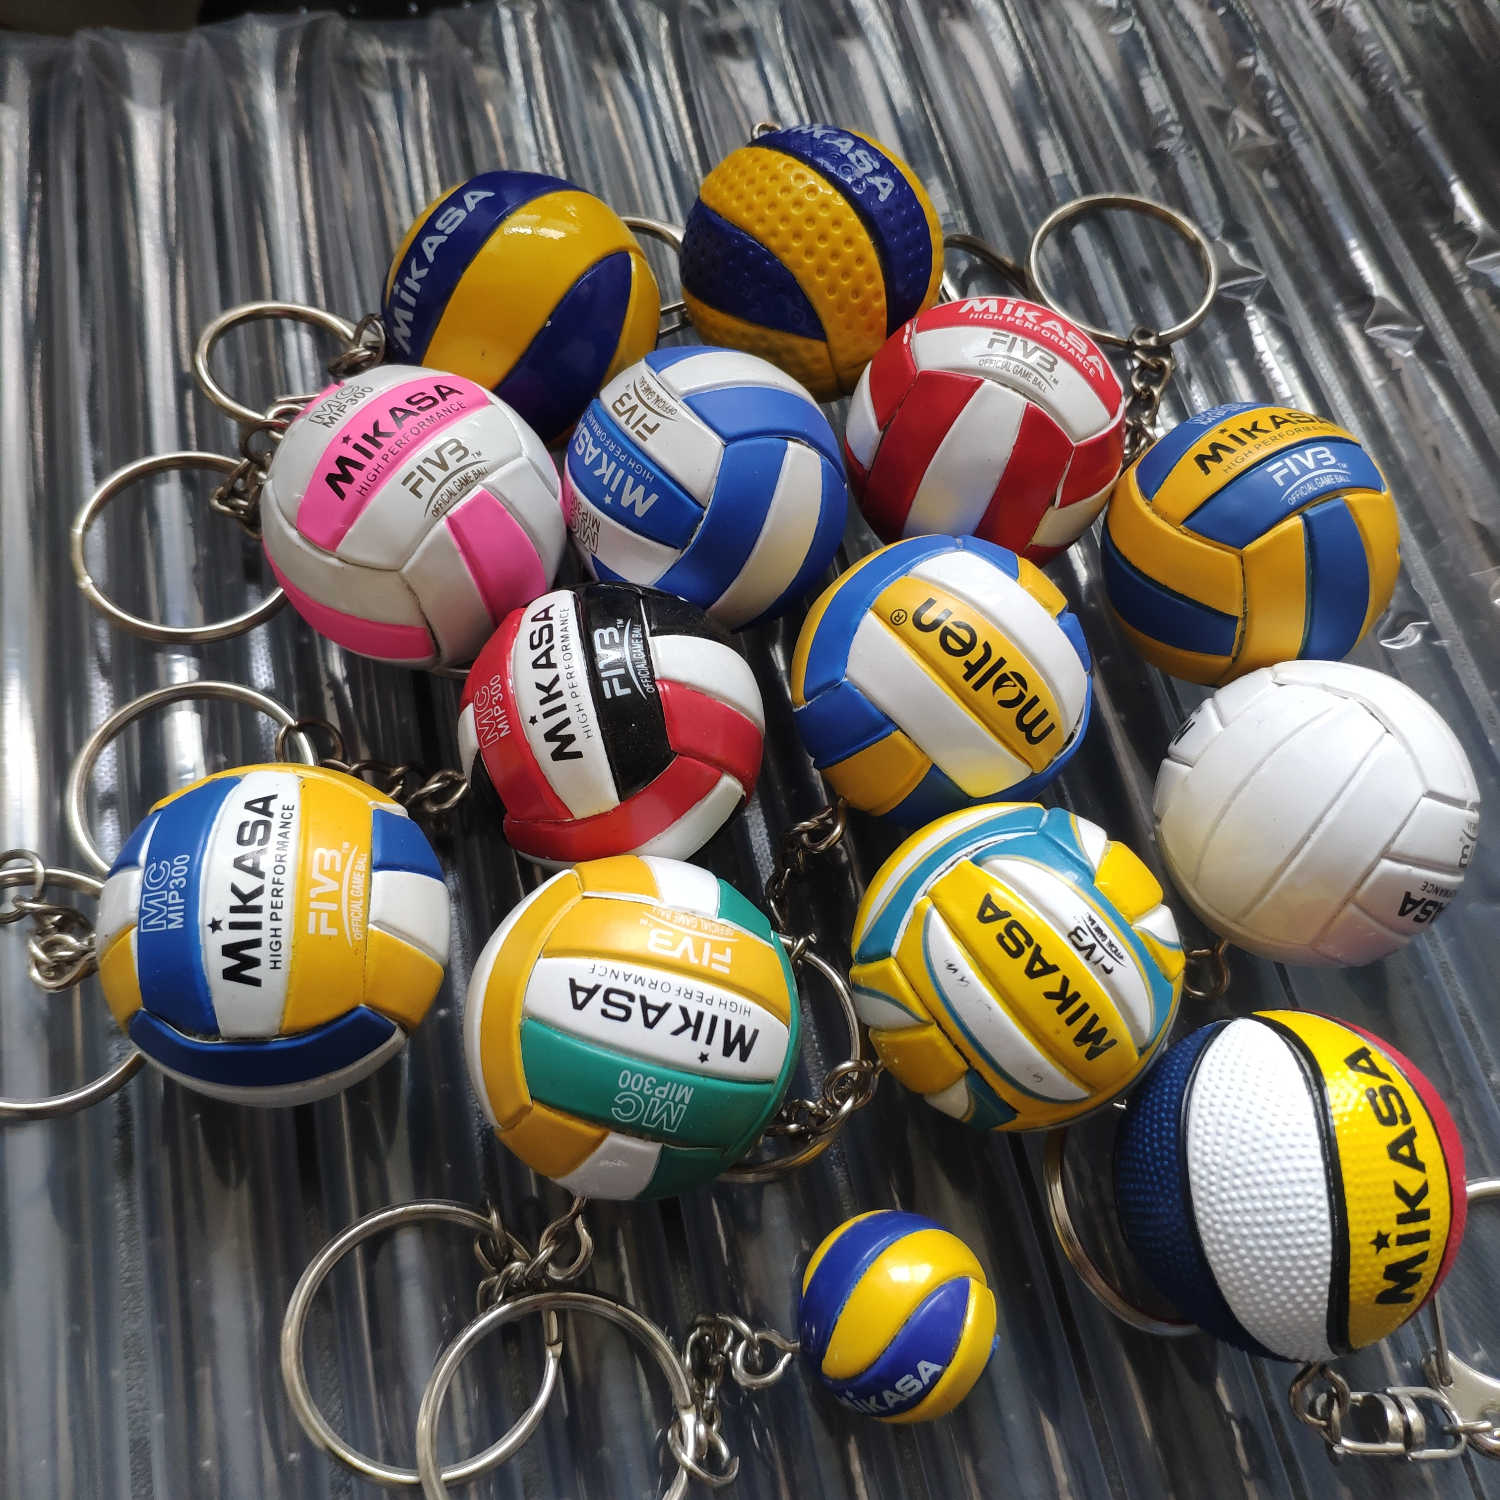 V200w Volleyball Keychain Sport Key Chain Car Bag Ball Volleyball Key Ring Jewellery Gifts For Players Keyring Keychains Aliexpress